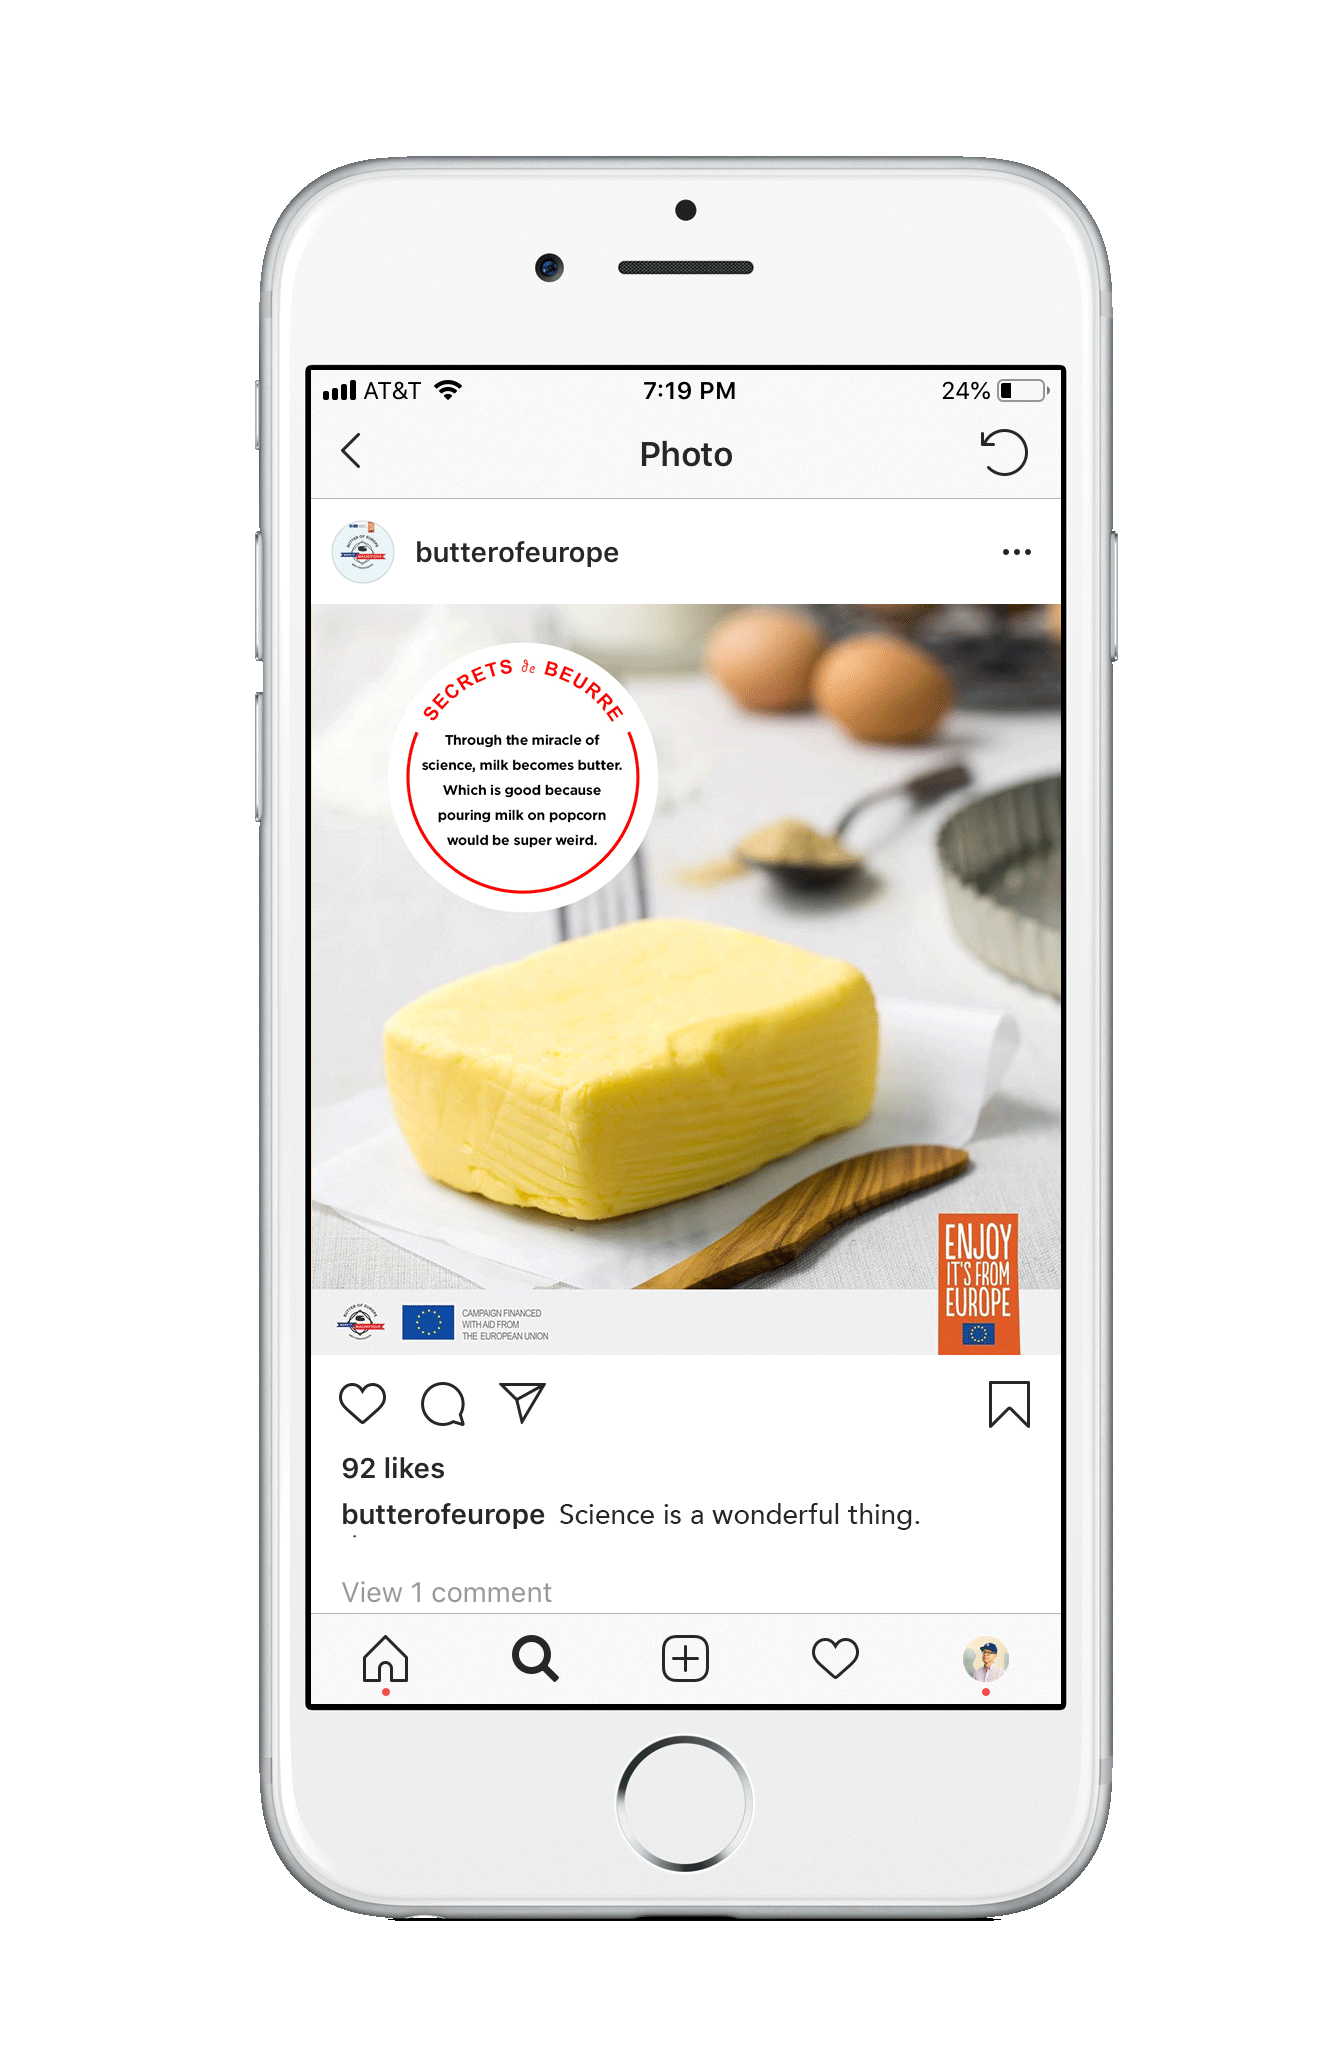 ButterOfEurope_Instagram_Layout_4web.png